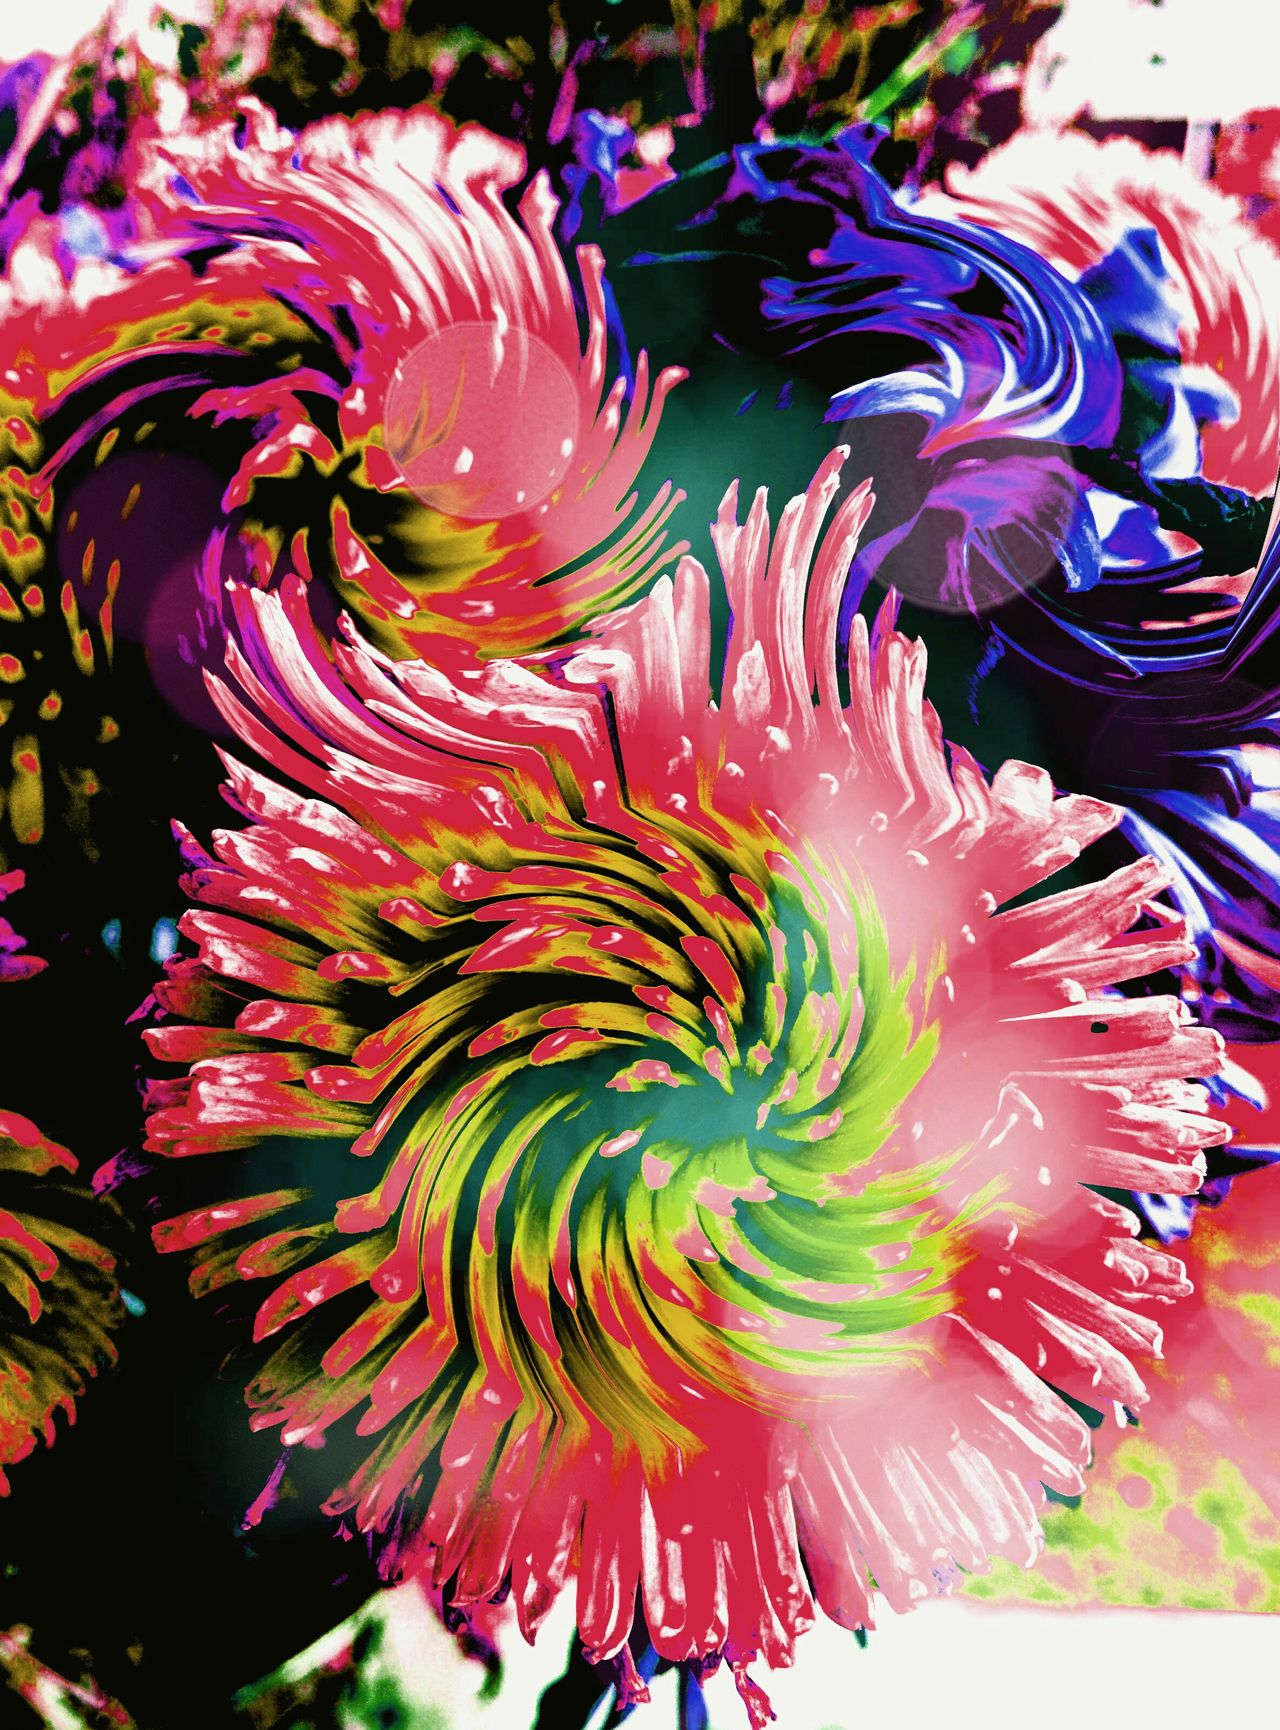 Swirlyflowers Flowers Edited Showcase July Coloroflife ColourOFlife Colour Of Life Pivotal Ideas